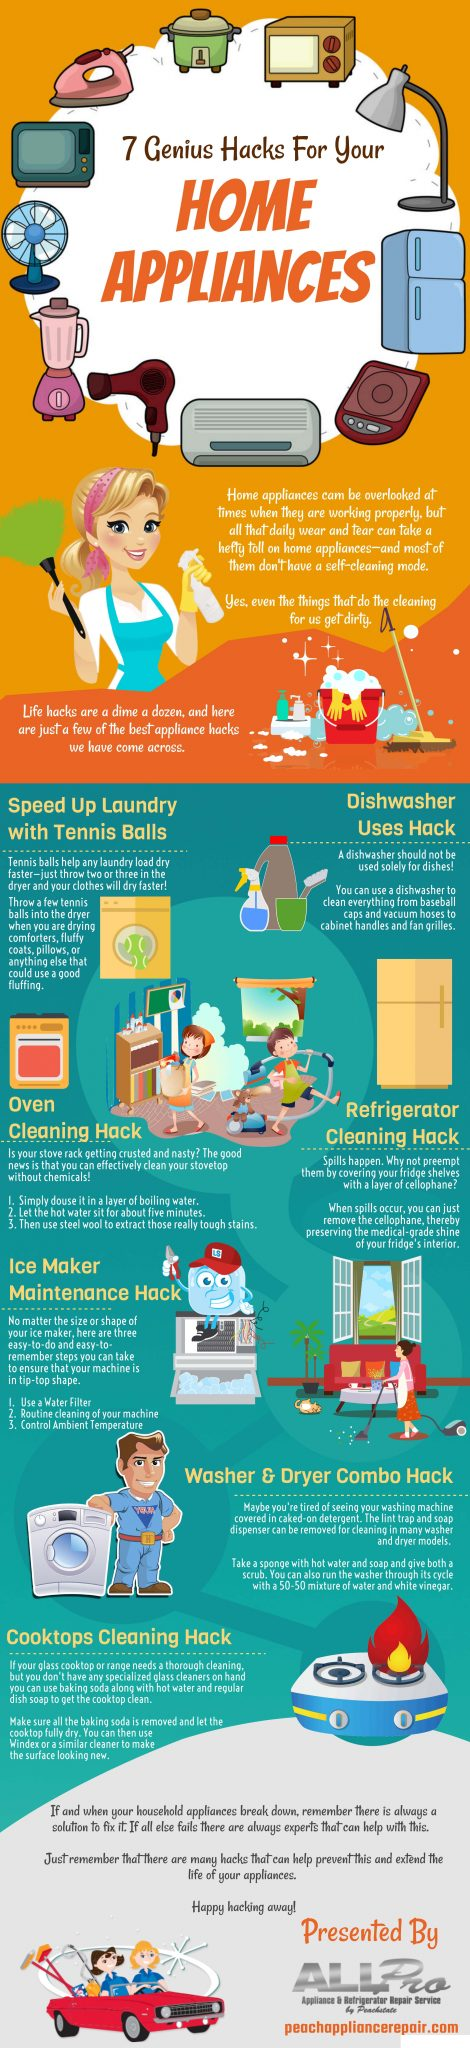 infographic 7 genius hacks for your home appliances, All Pro Appliance and Refrigerator Repair Metro Atlanta